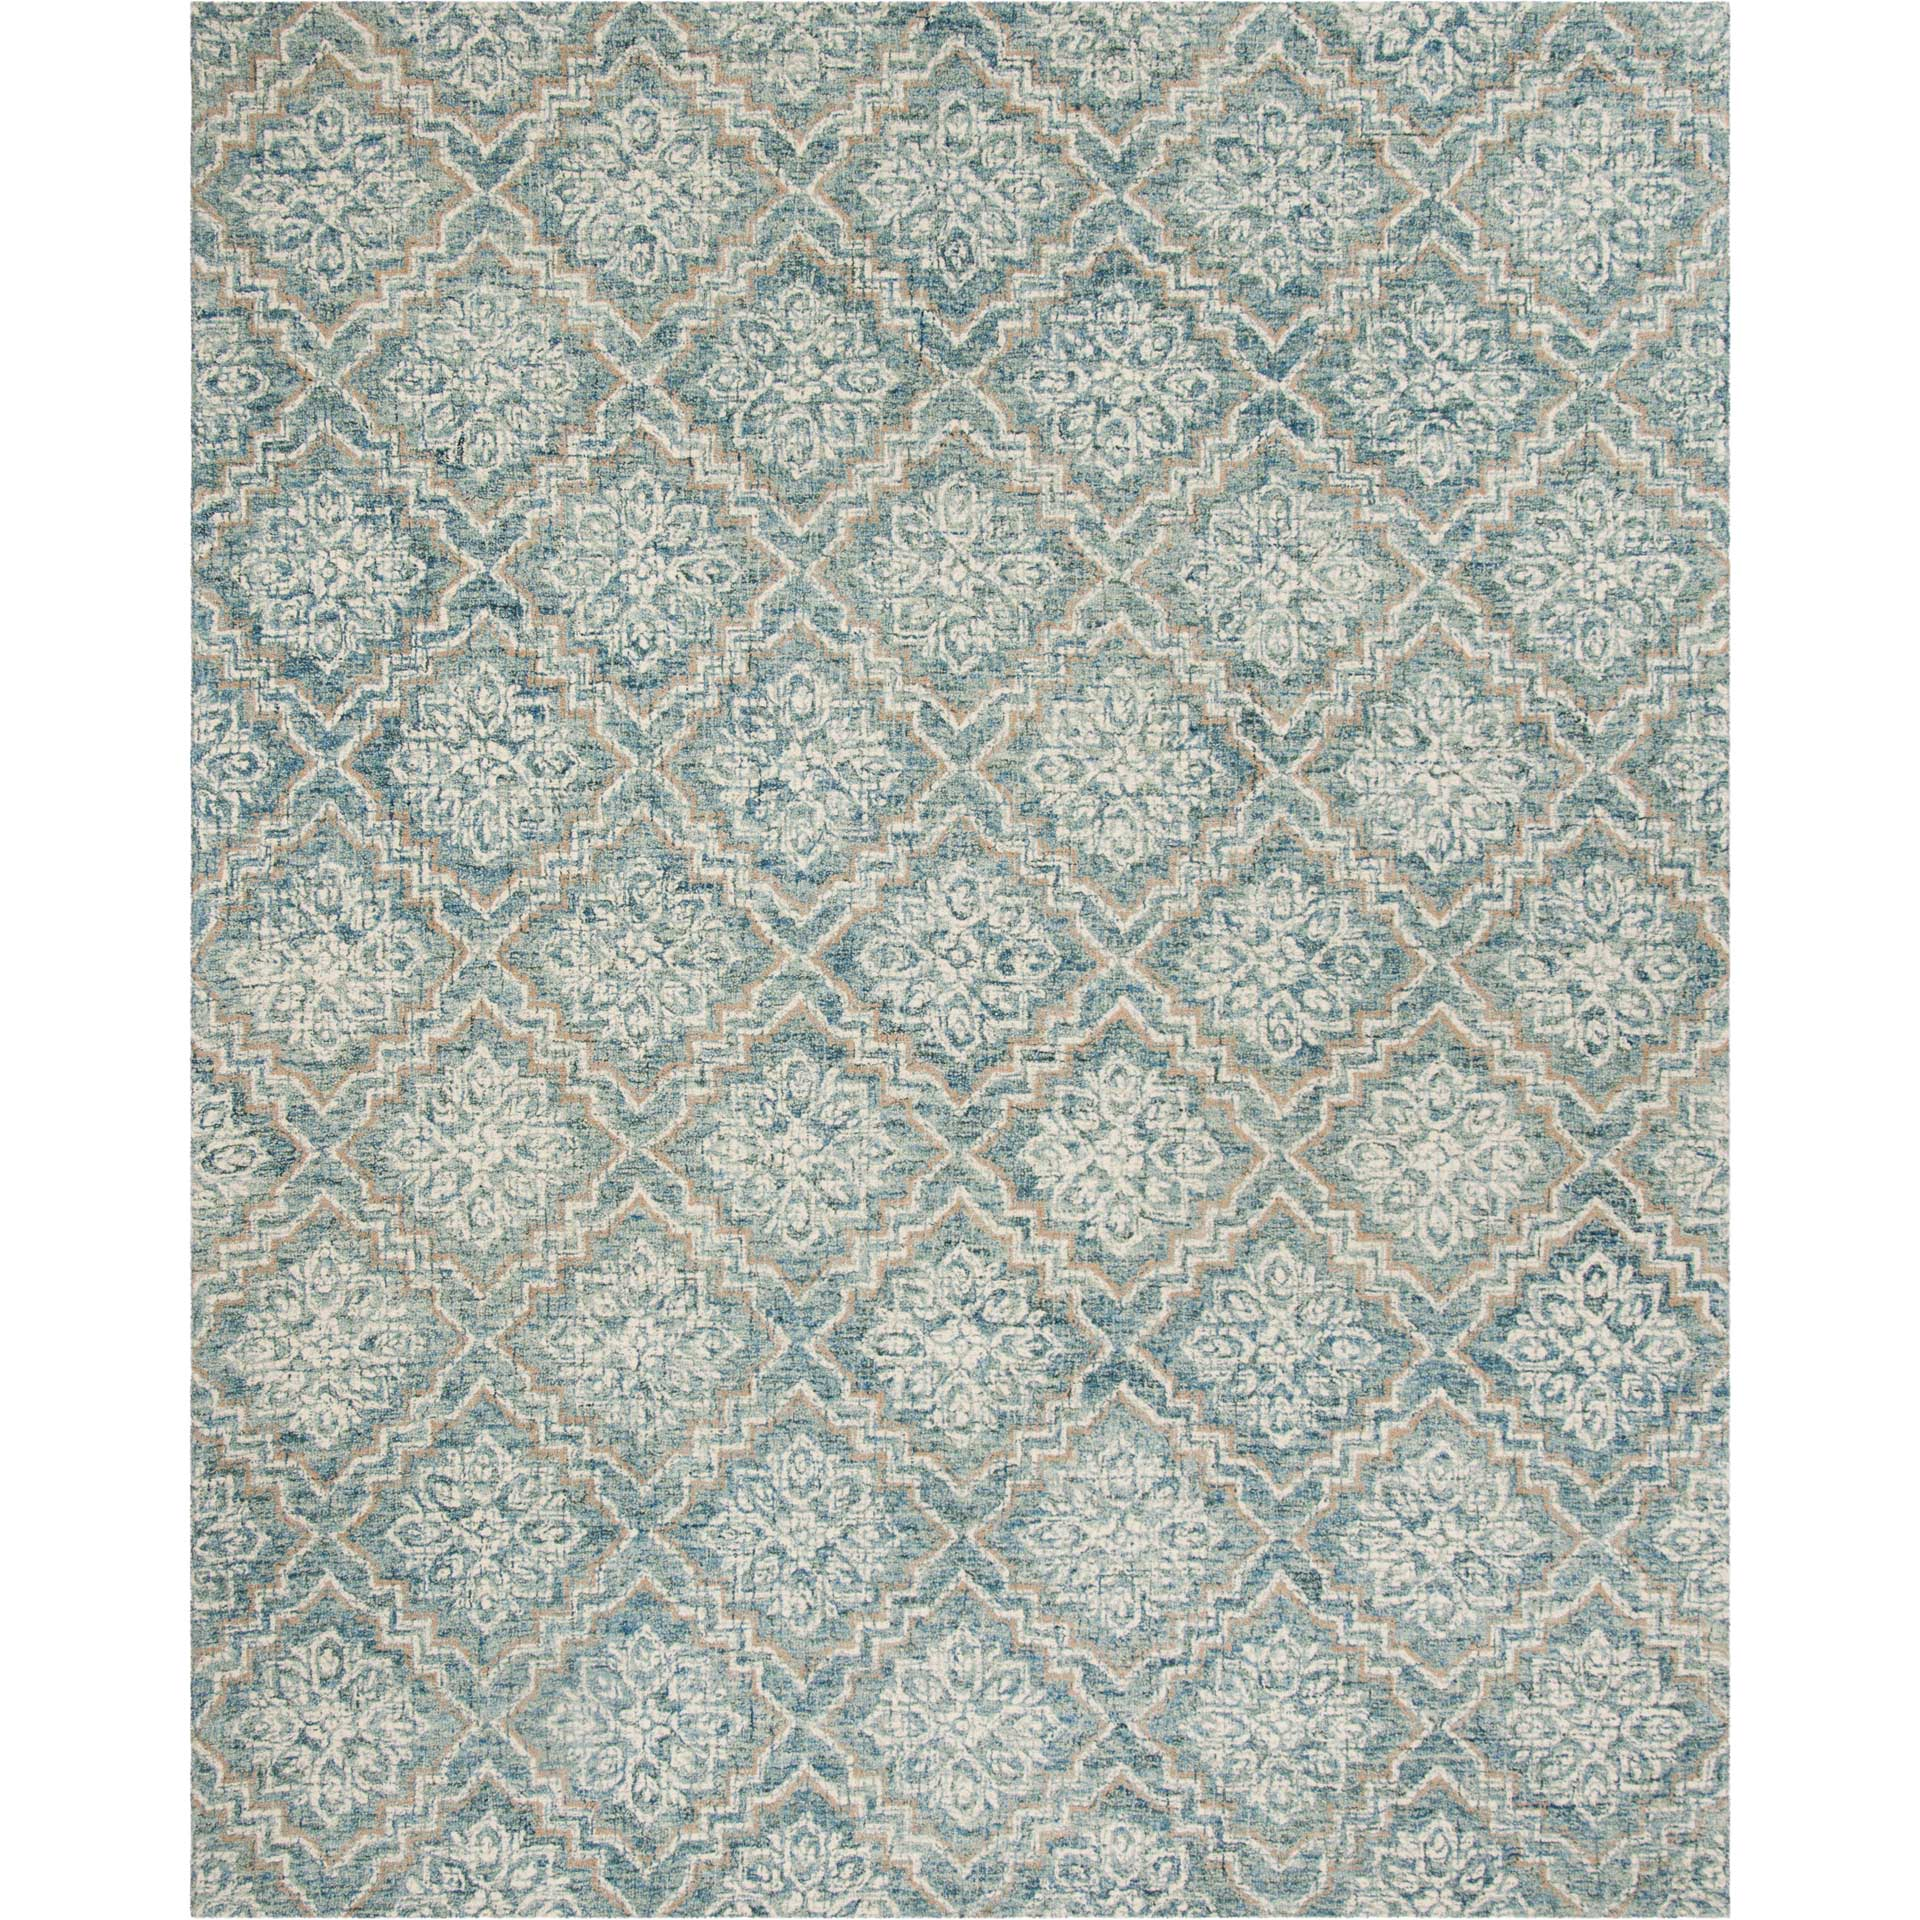 Abstract Blue/Gray Area Rug